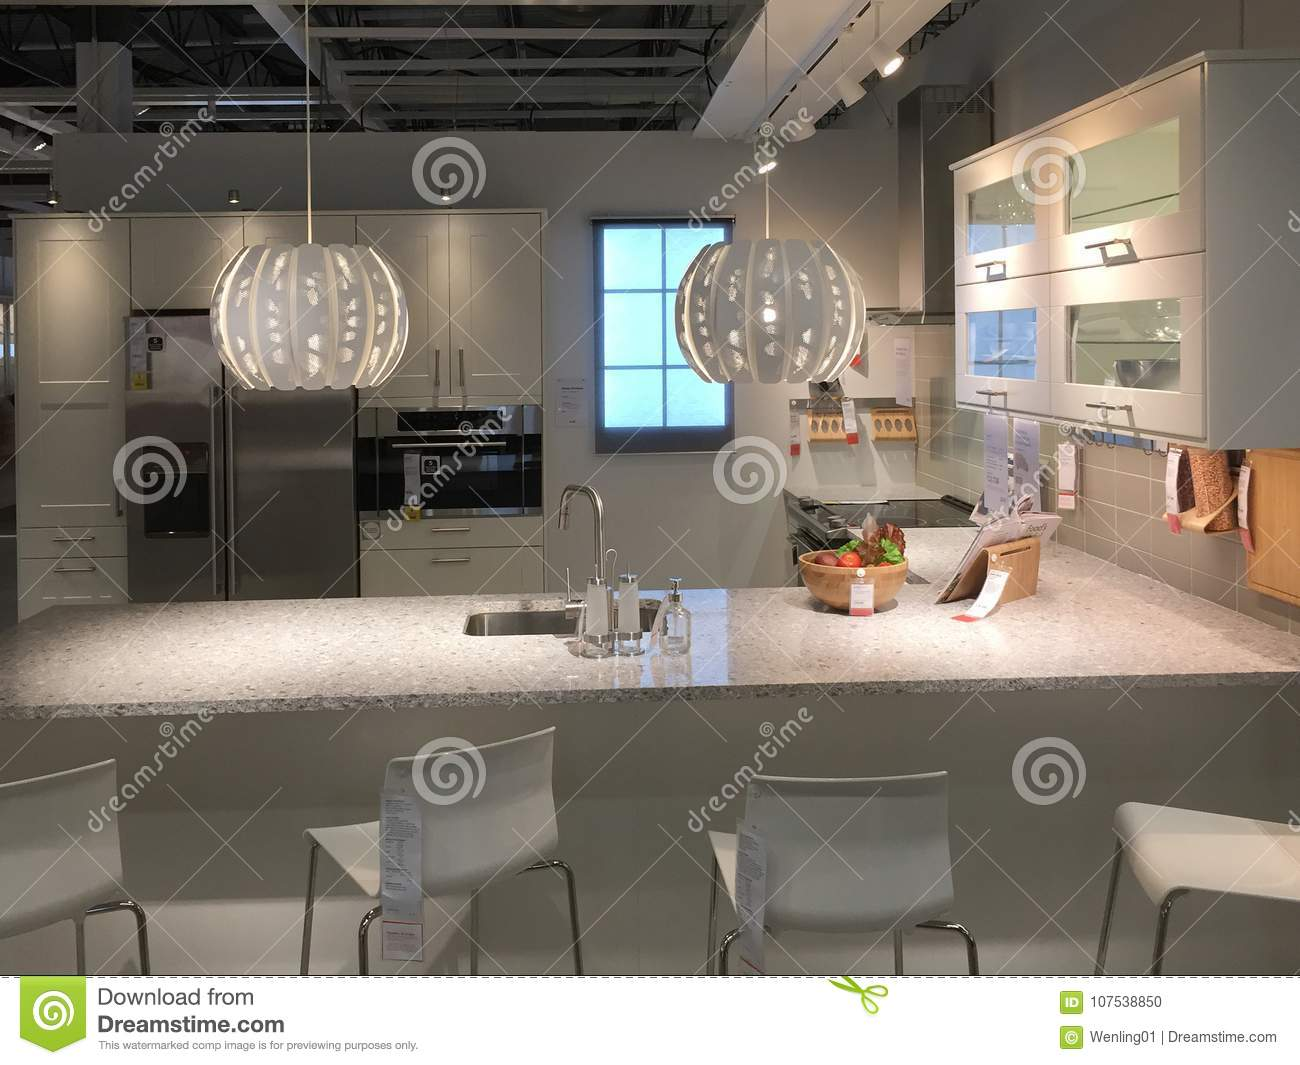 modern kitchen design with counter at ikea editorial image - image